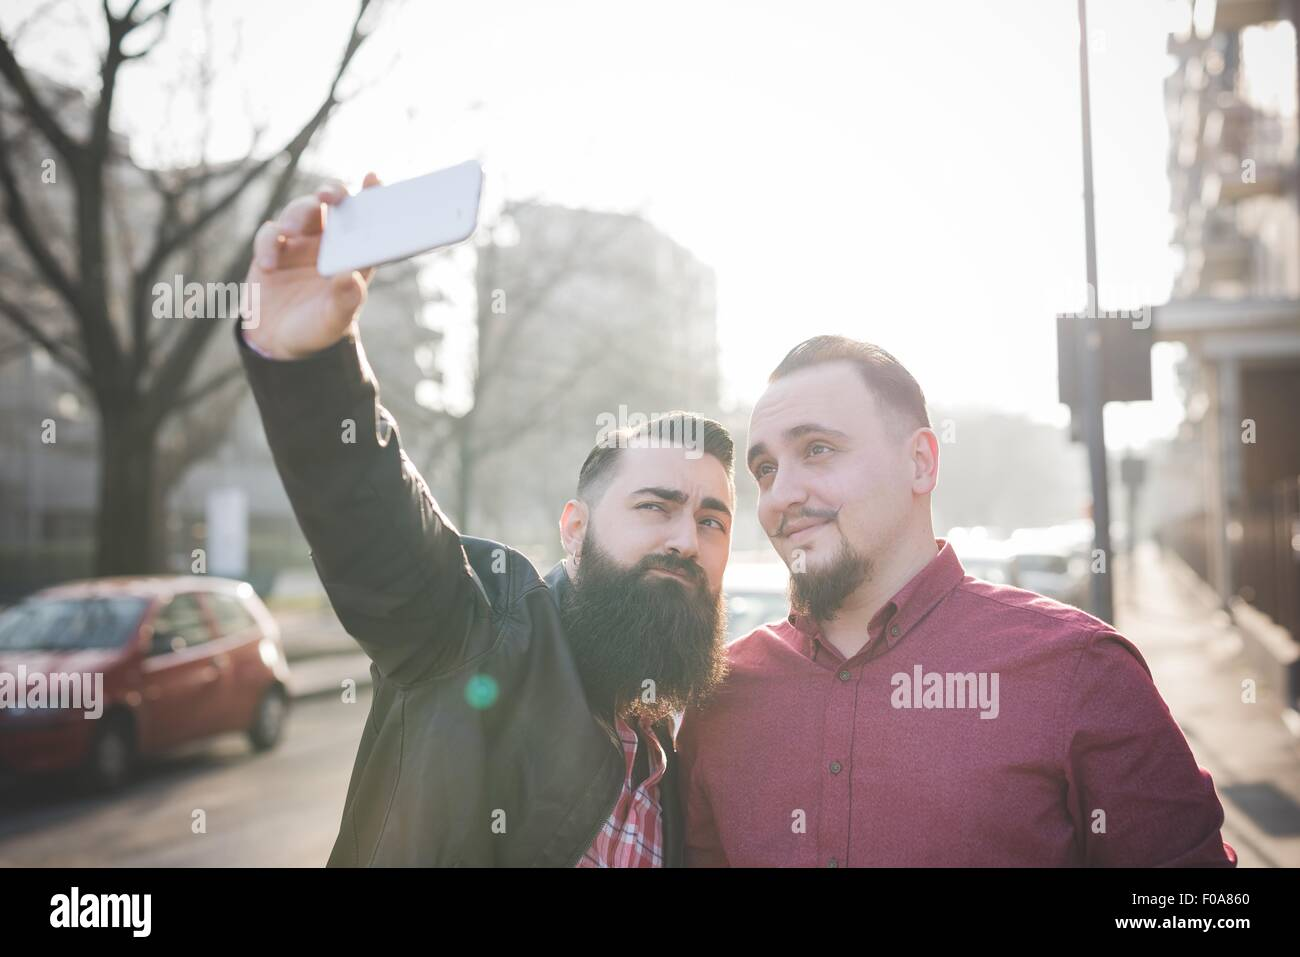 Gay couple taking selfie on pavement - Stock Image